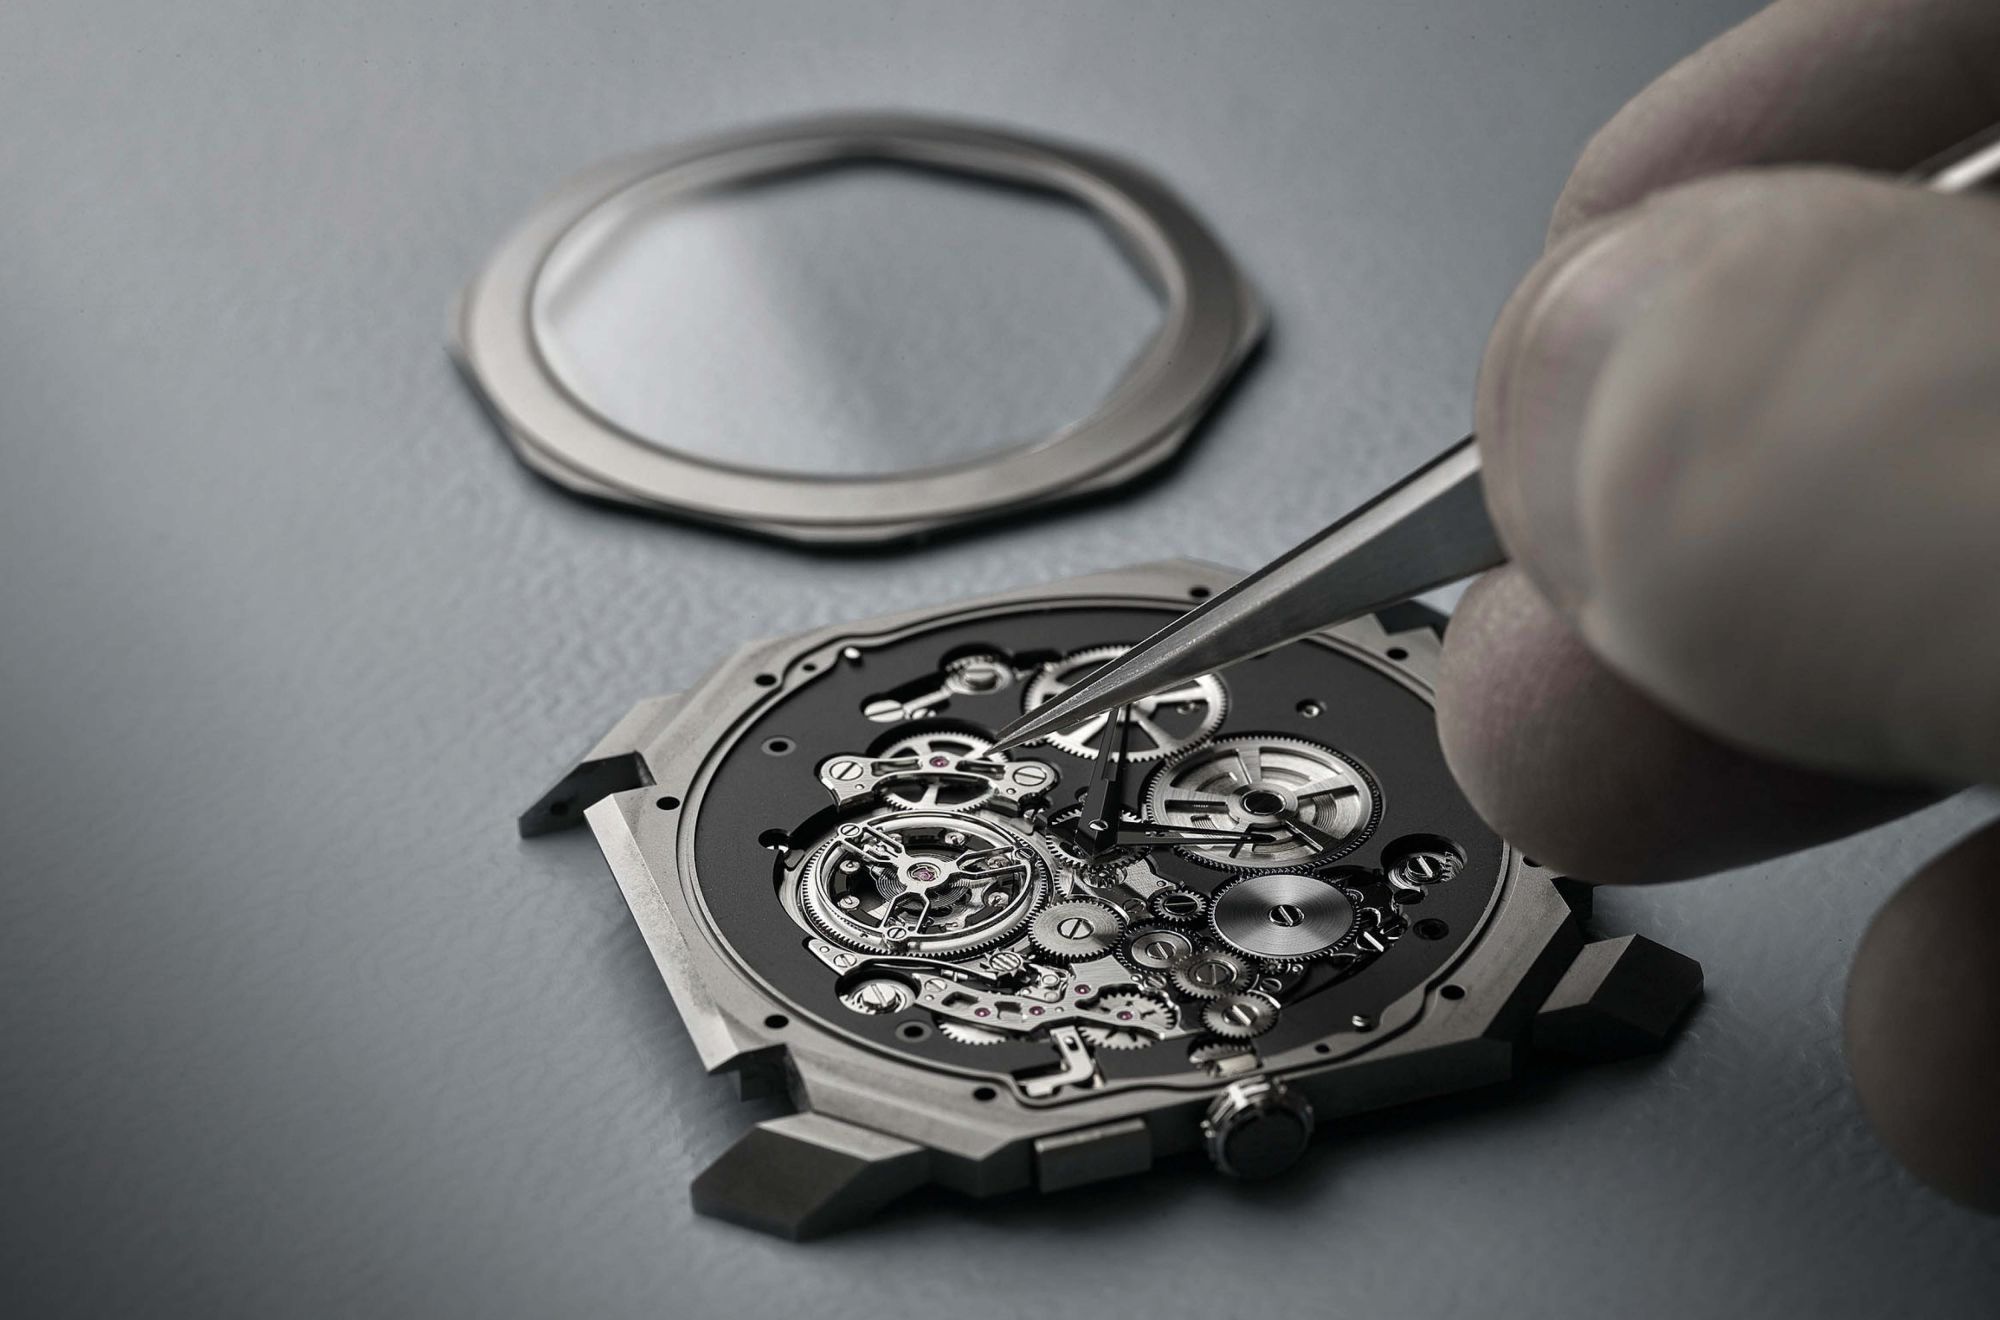 This Is The World's Thinnest Watch With A Flying Tourbillon